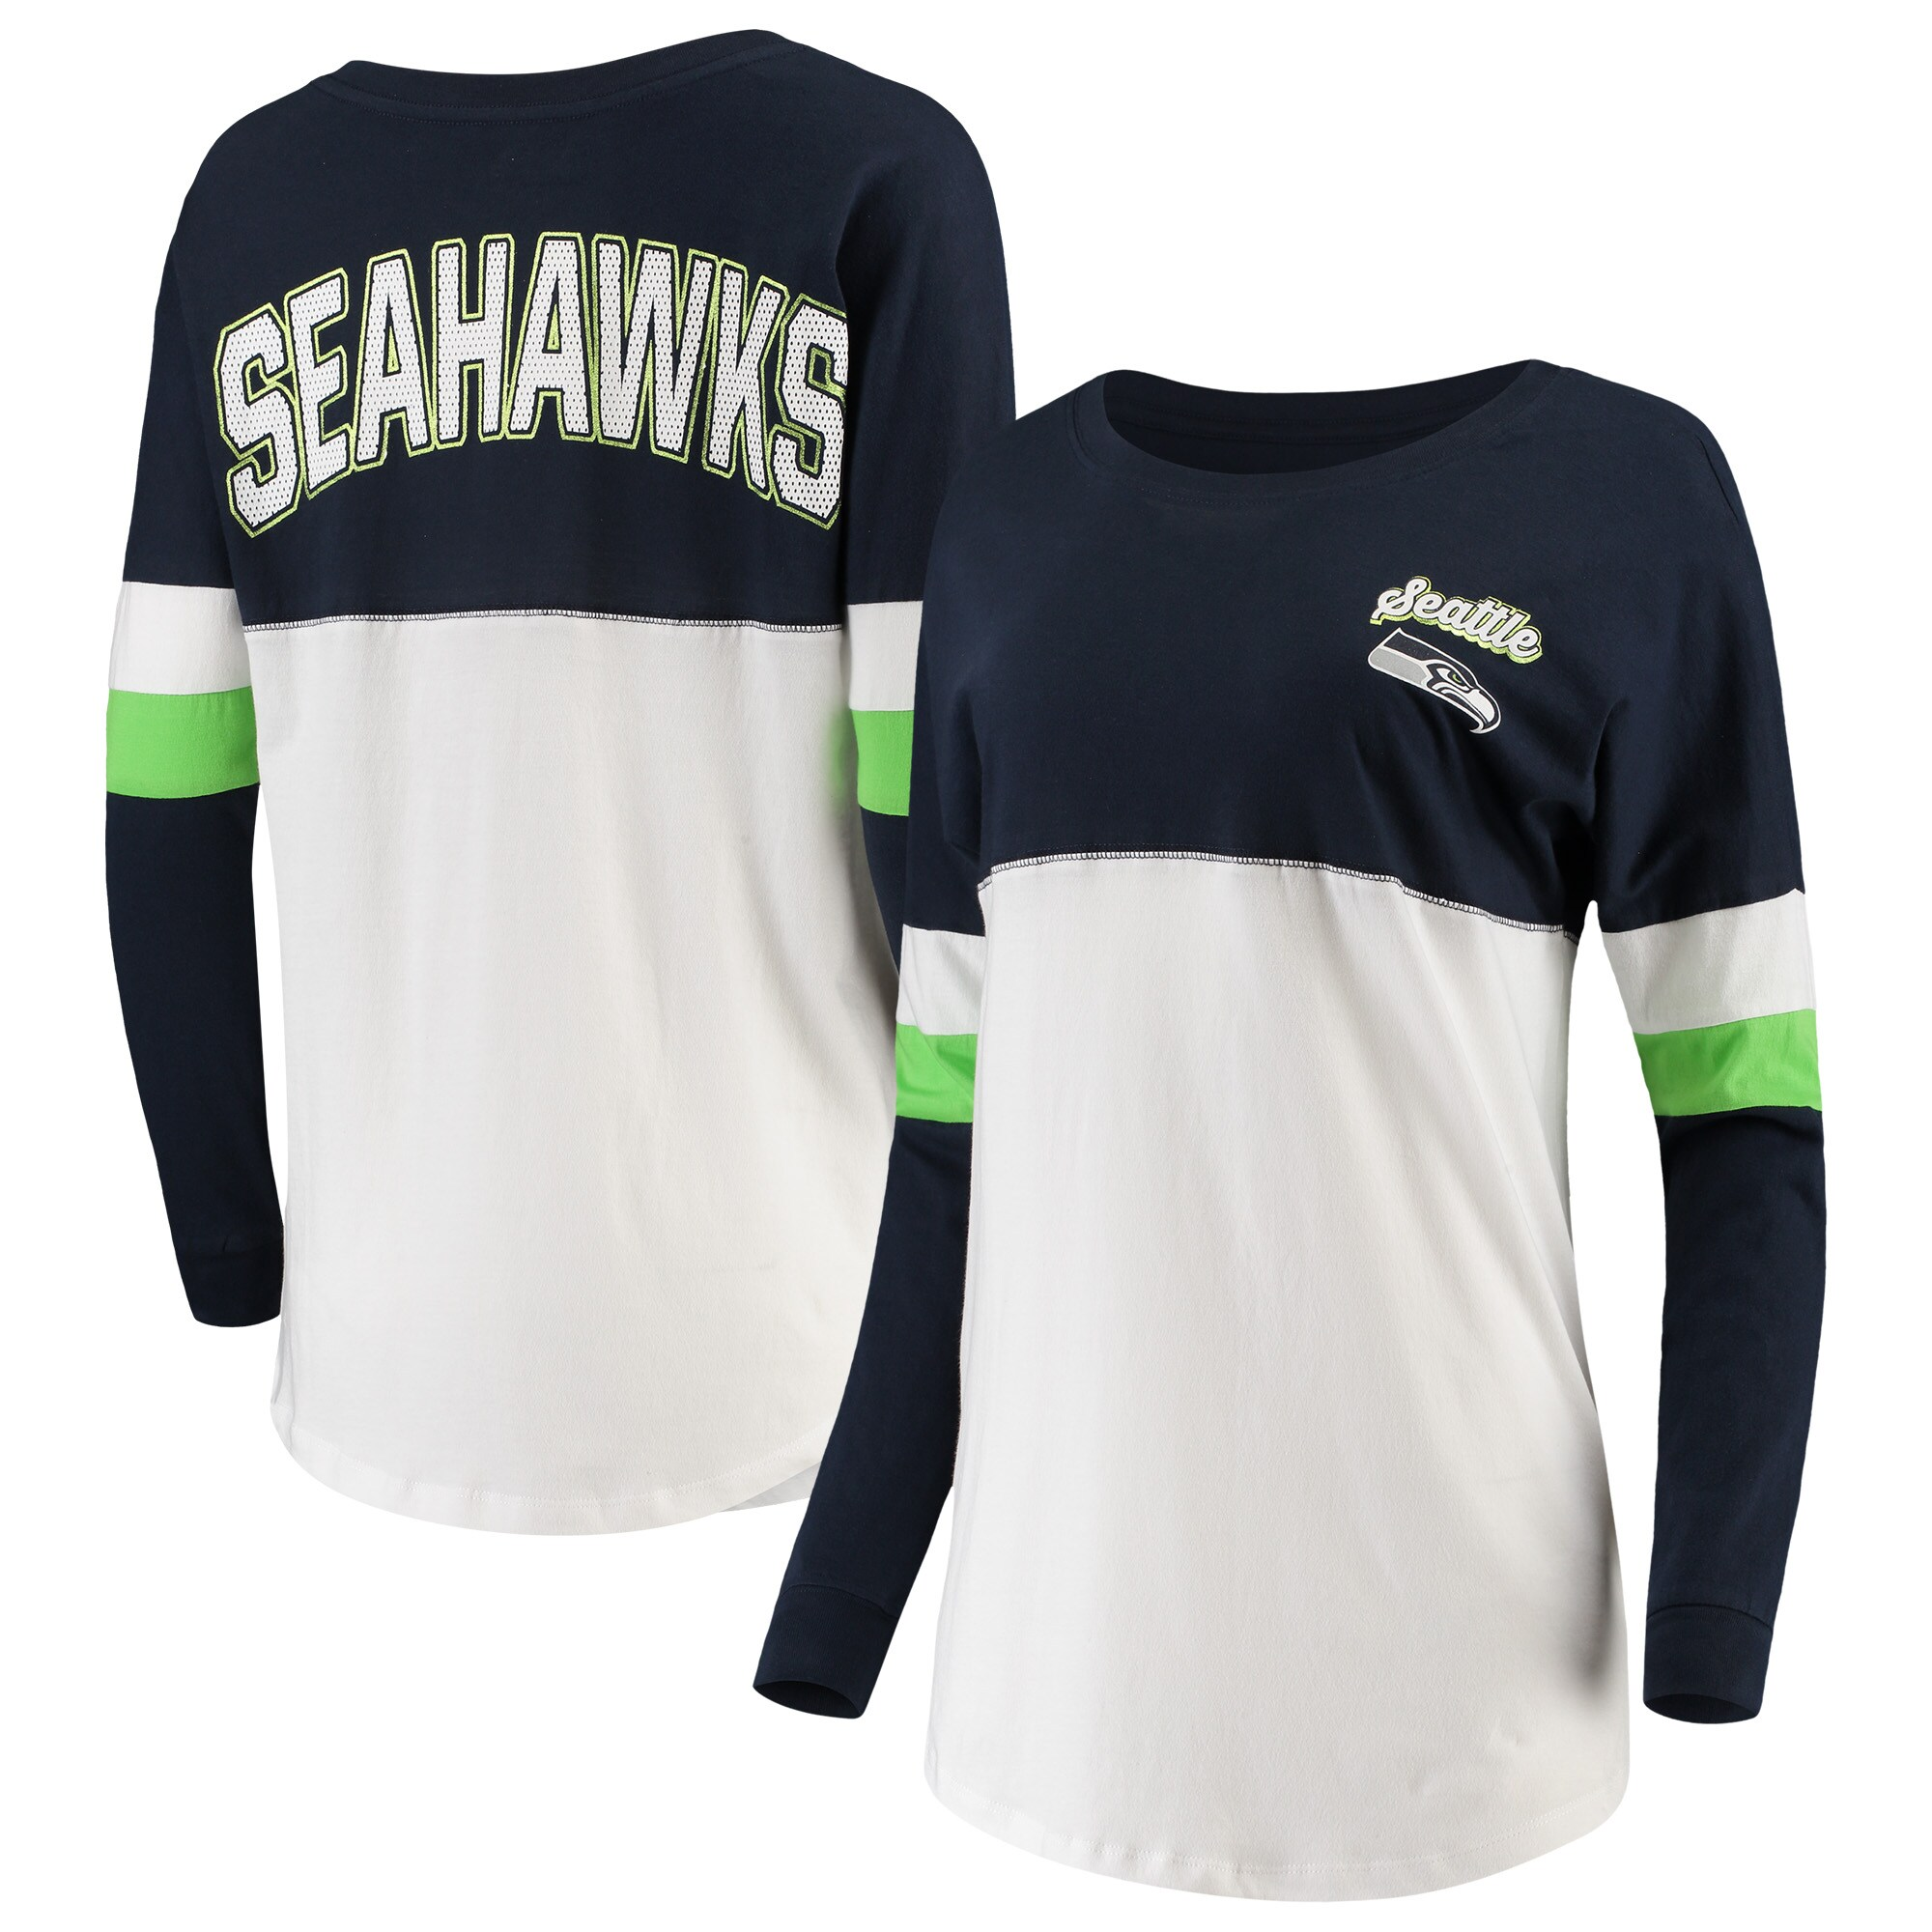 Seattle Seahawks New Era Women's Athletic Varsity Long Sleeve T-Shirt - Navy/White